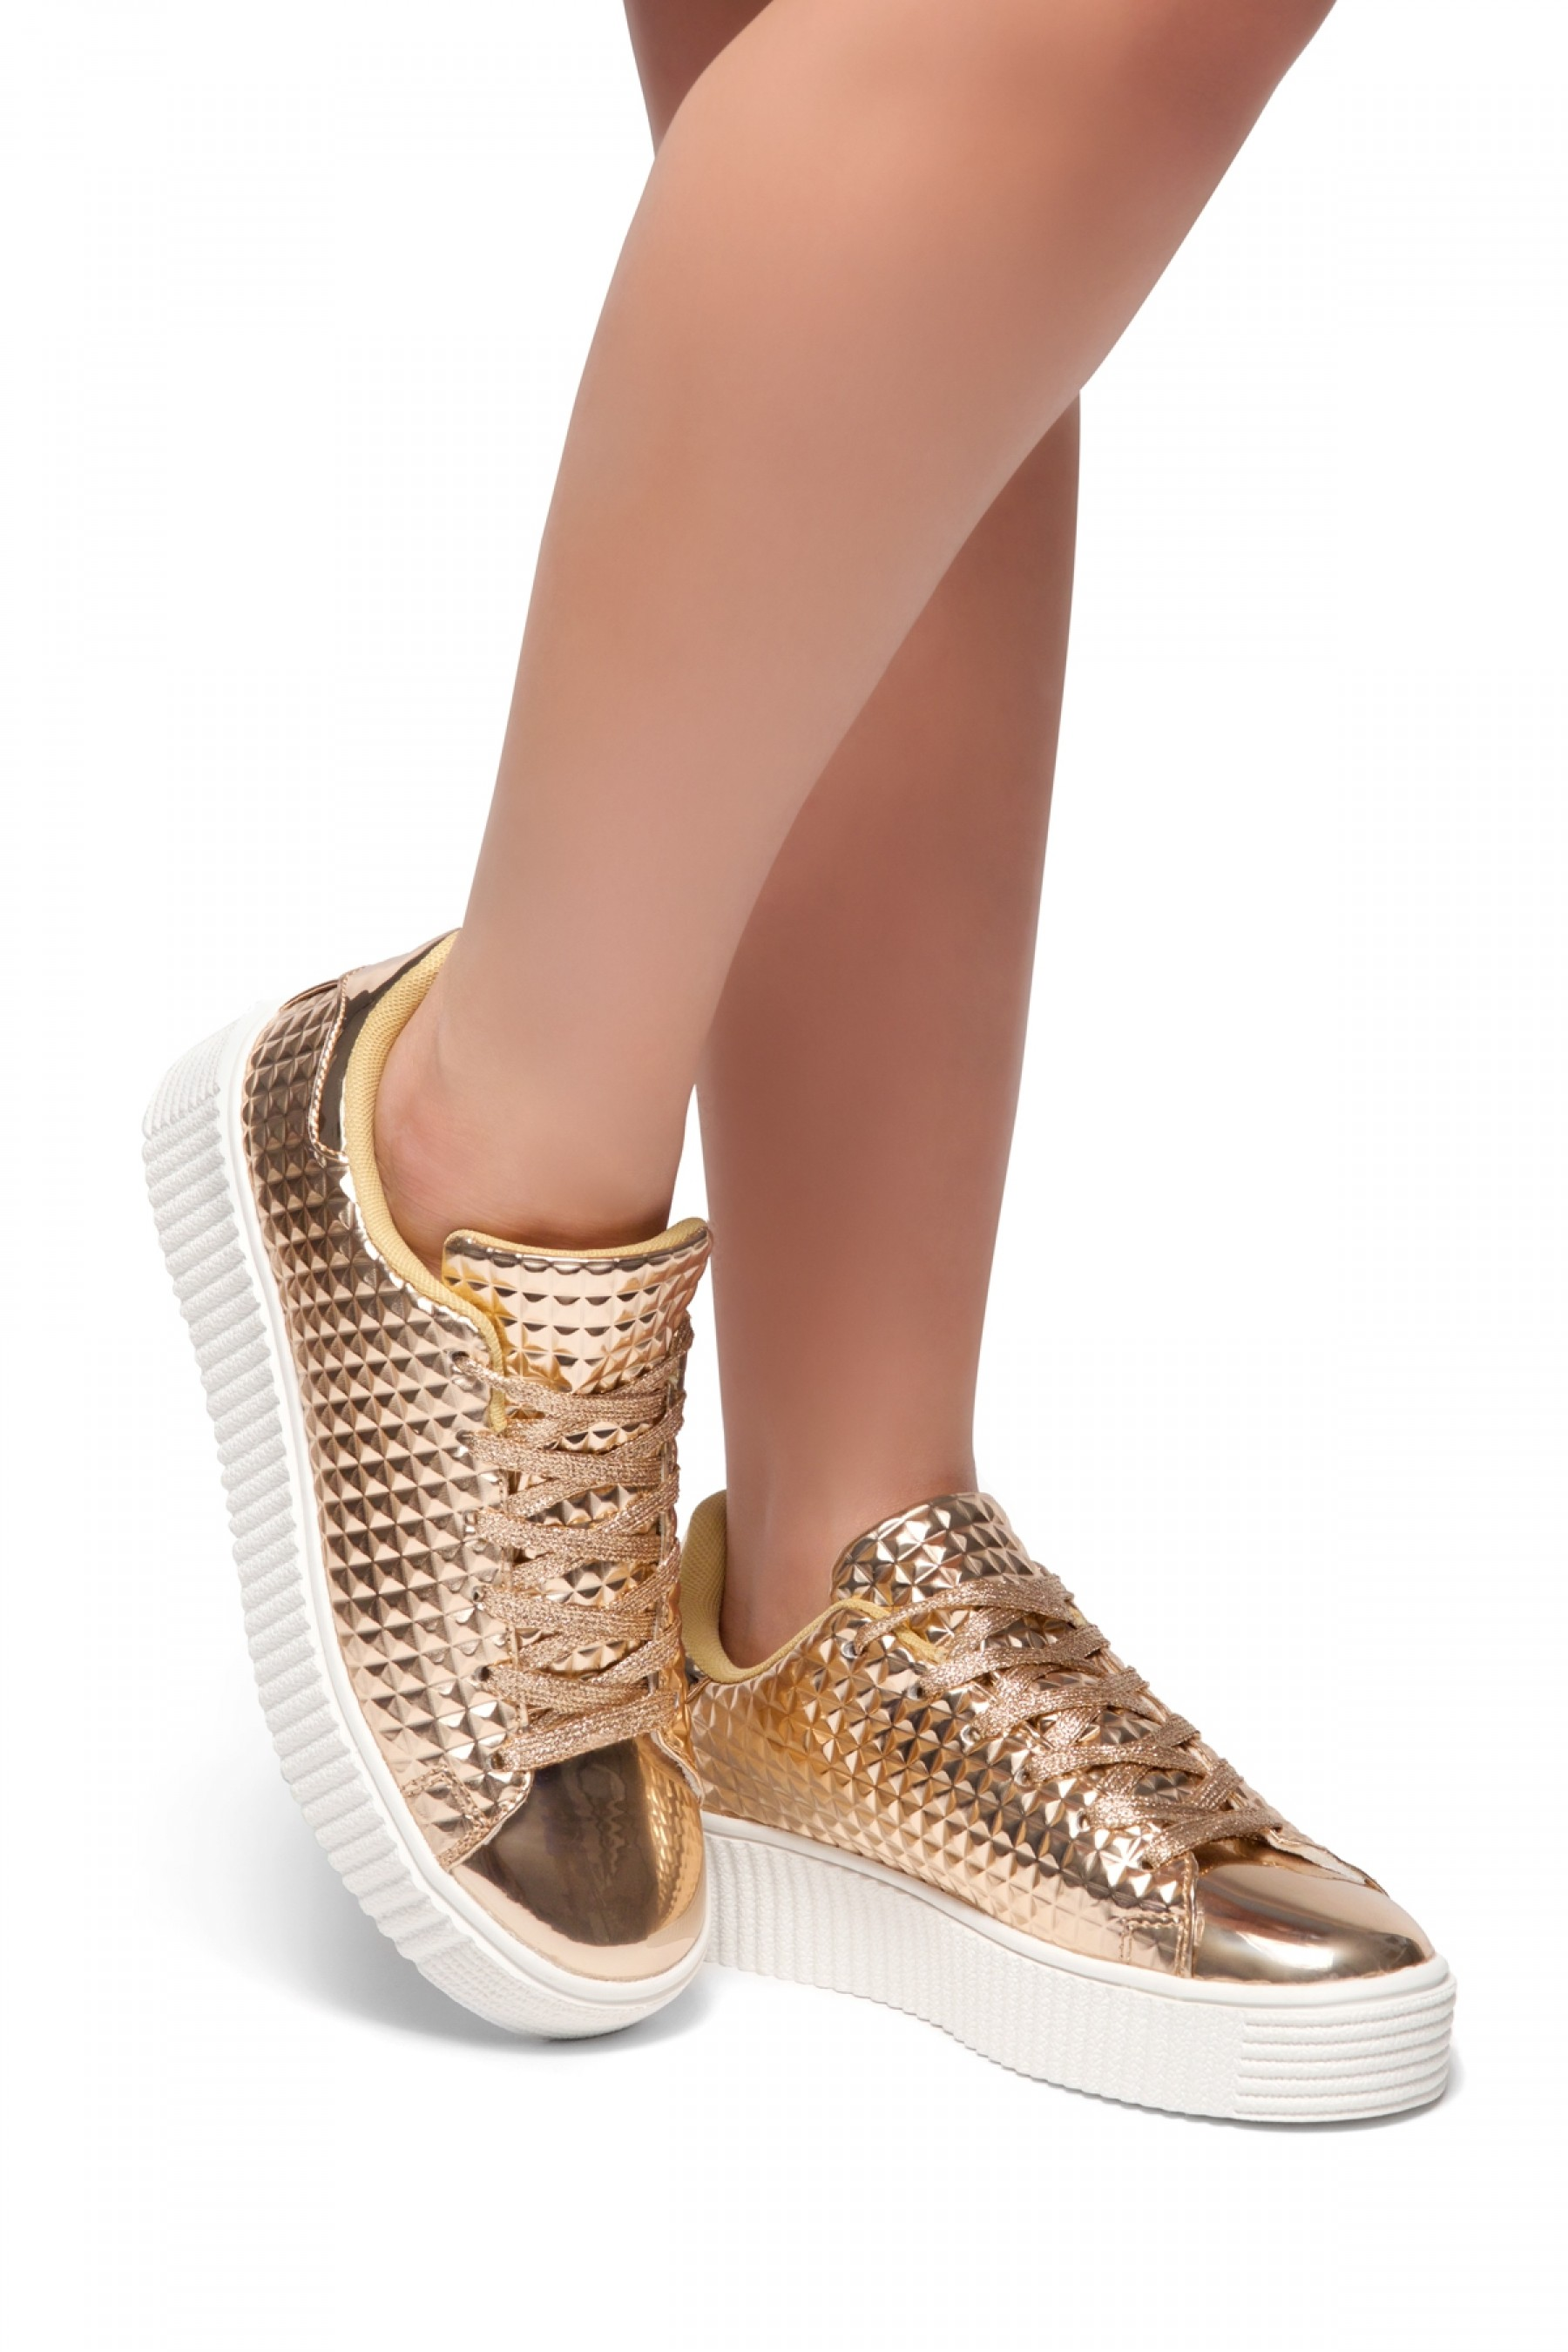 HerStyle Staycey-Metallic Pyramid Sneakers (Rose Gold)